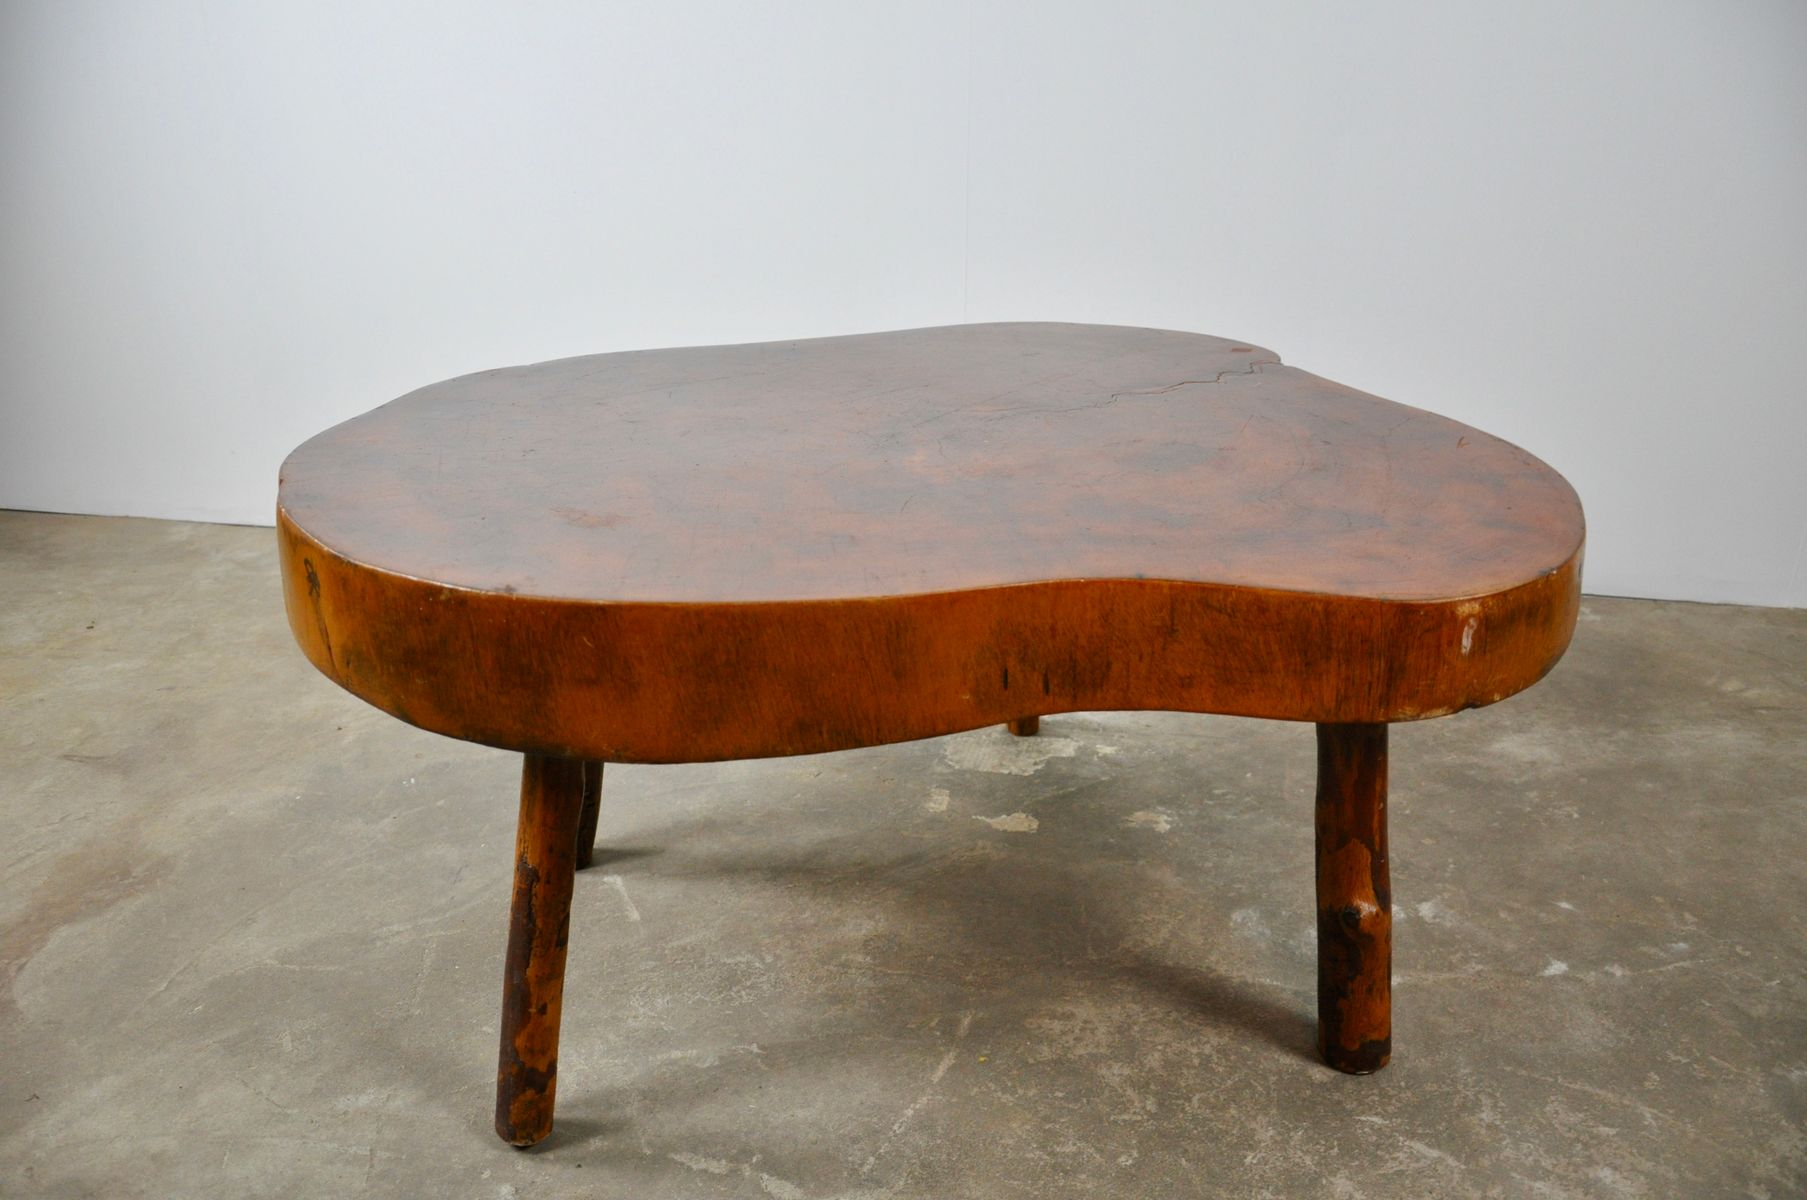 Tree Trunk Side Table 1970s 7 502 00 Price Per Set